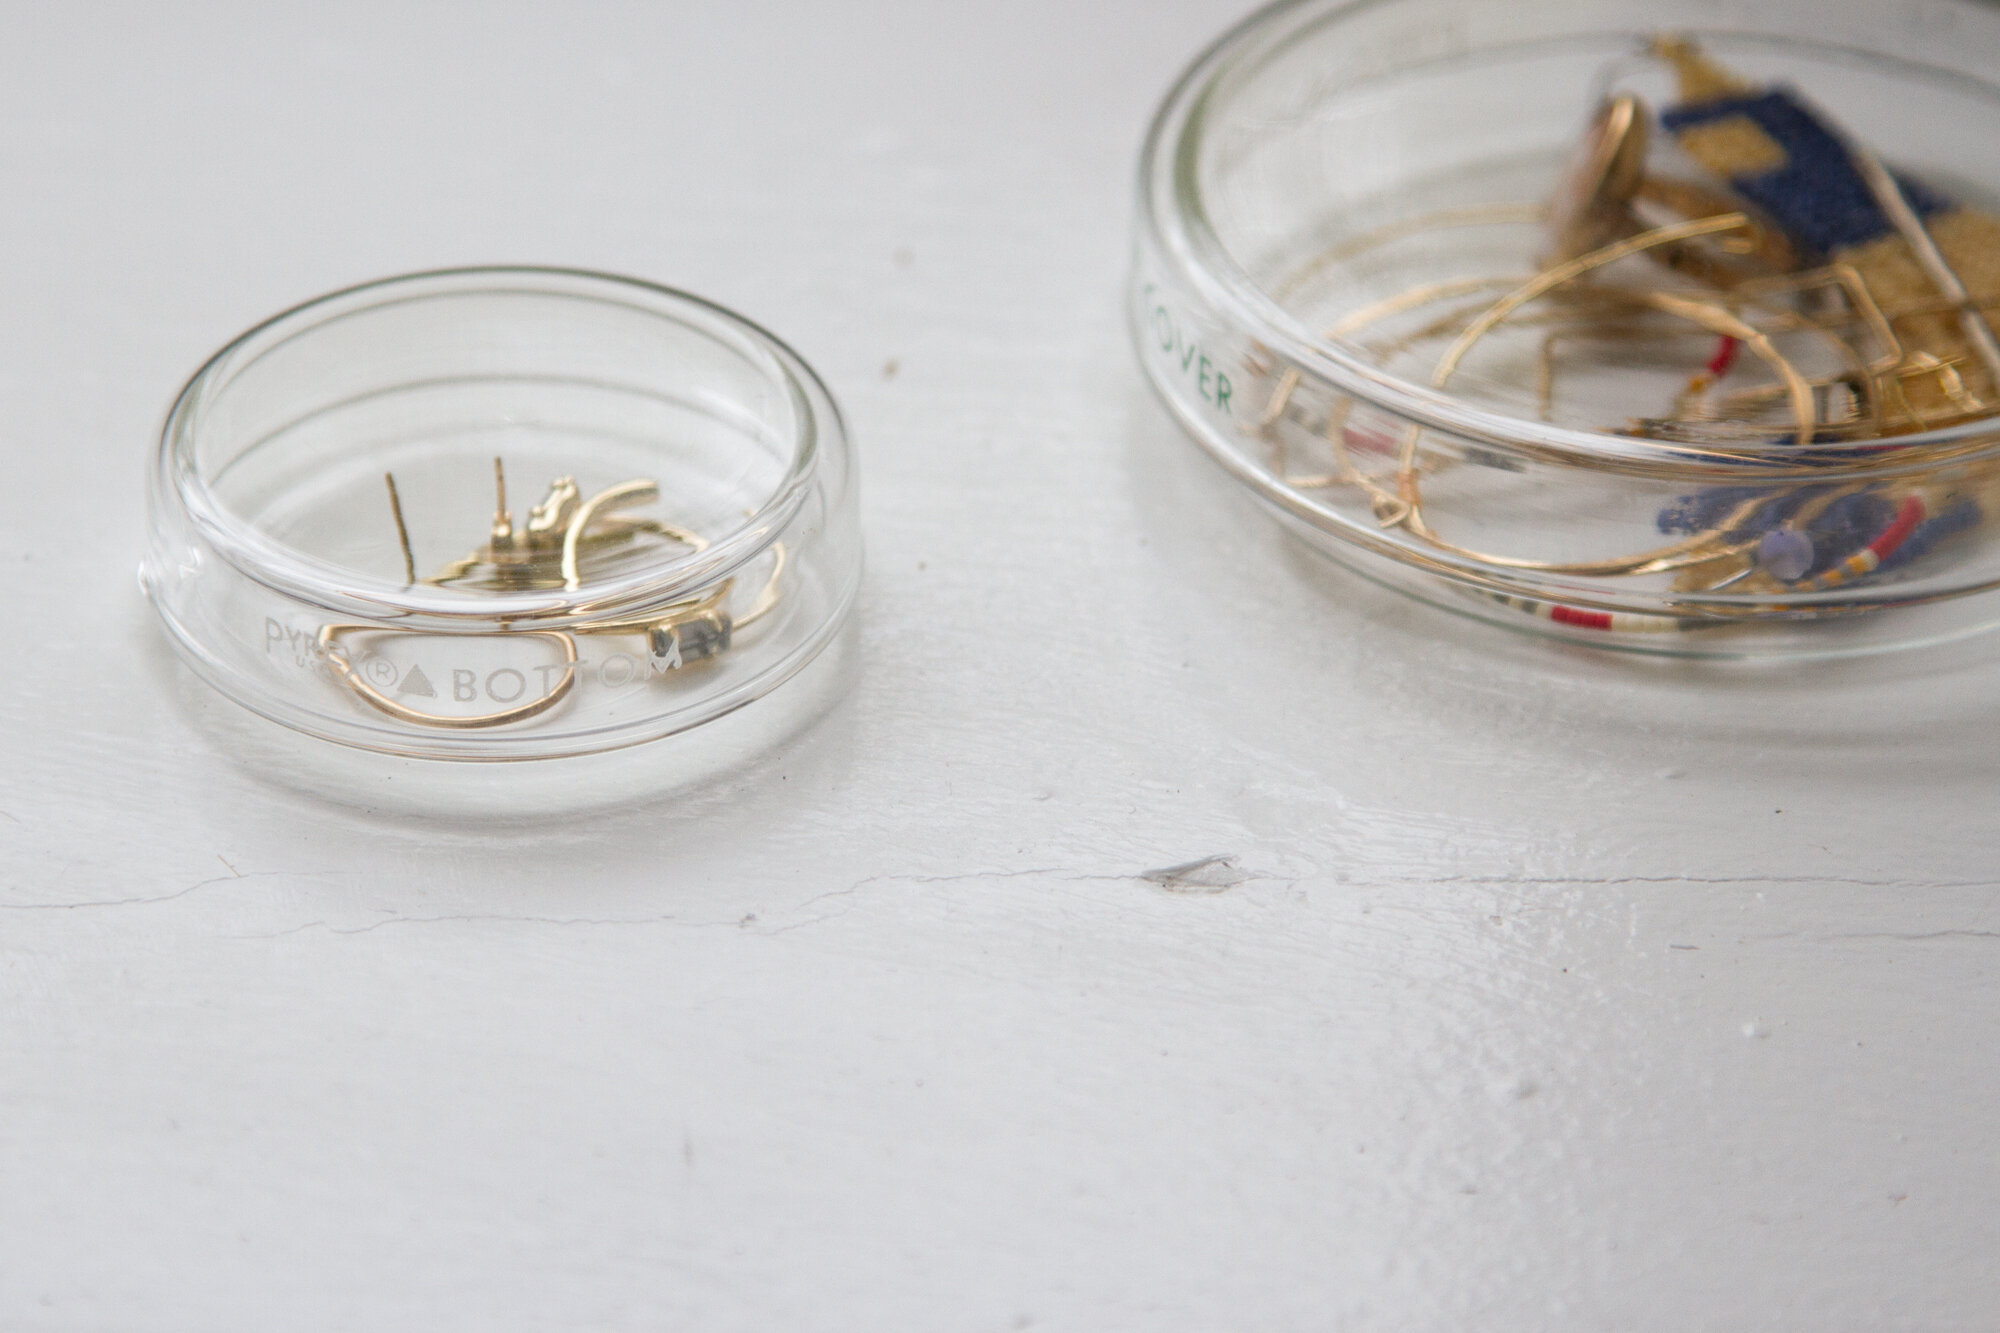 jewelry in petri dishes | reading my tea leaves